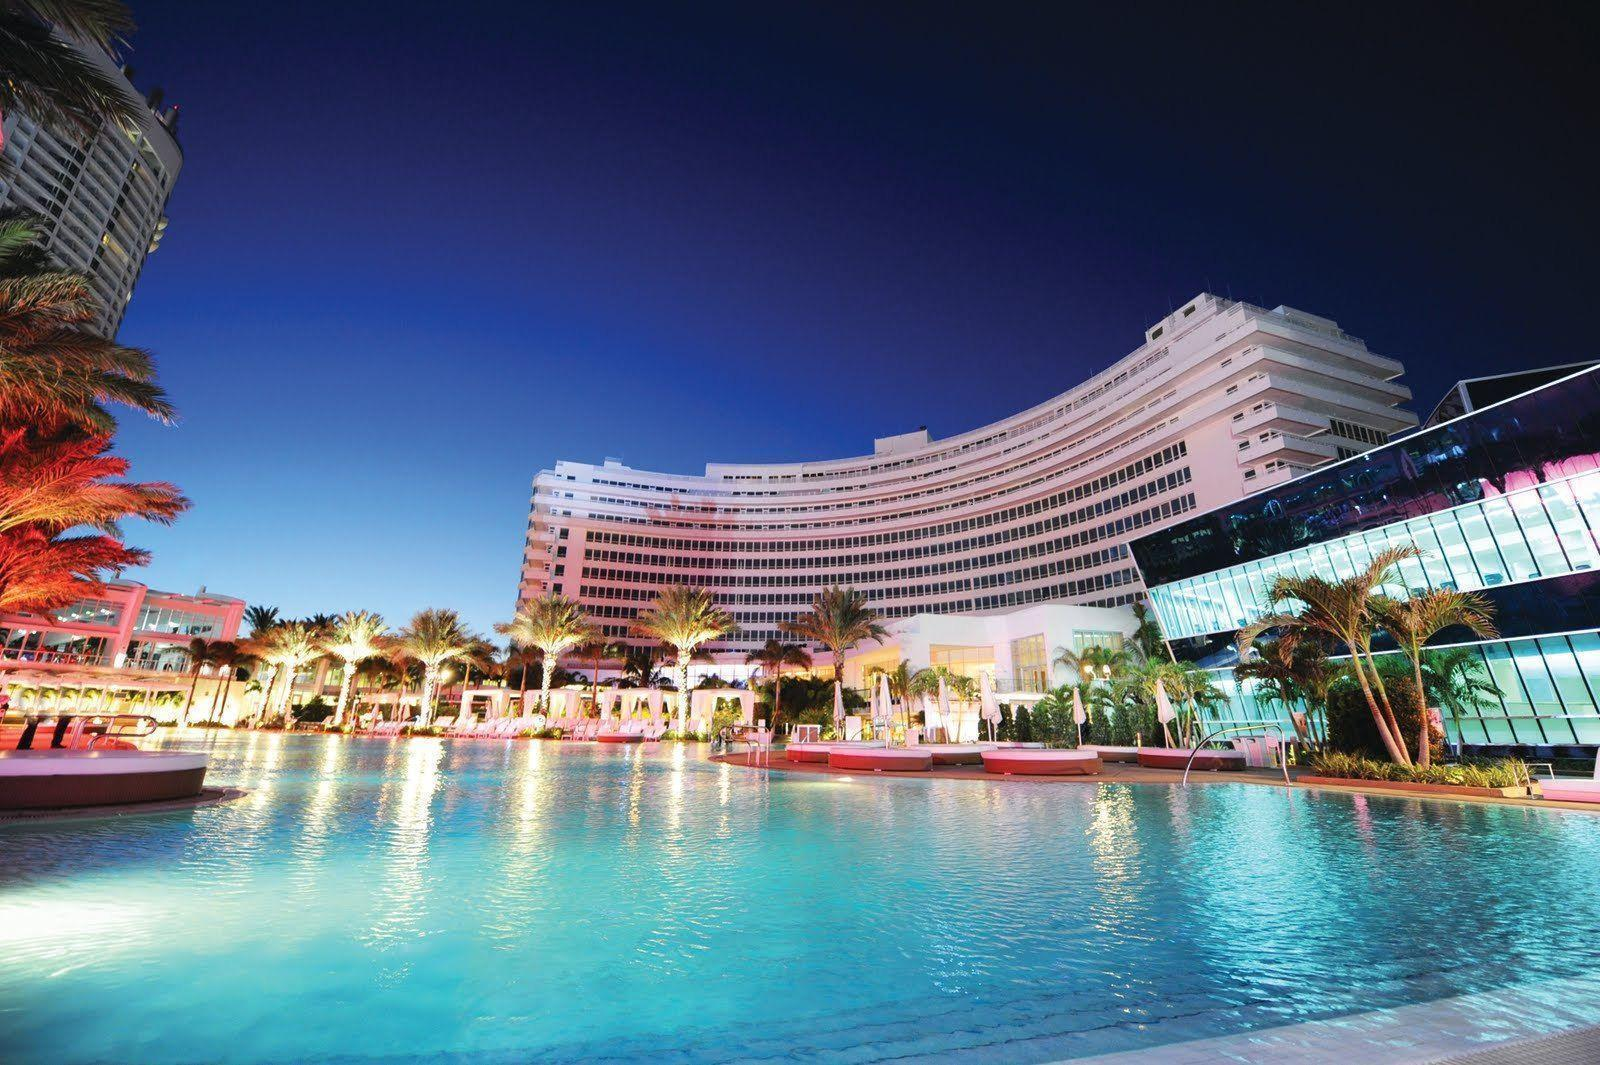 Download Fontainebleau Hotel Miami Beach Hd Wallpaper | Full HD ...